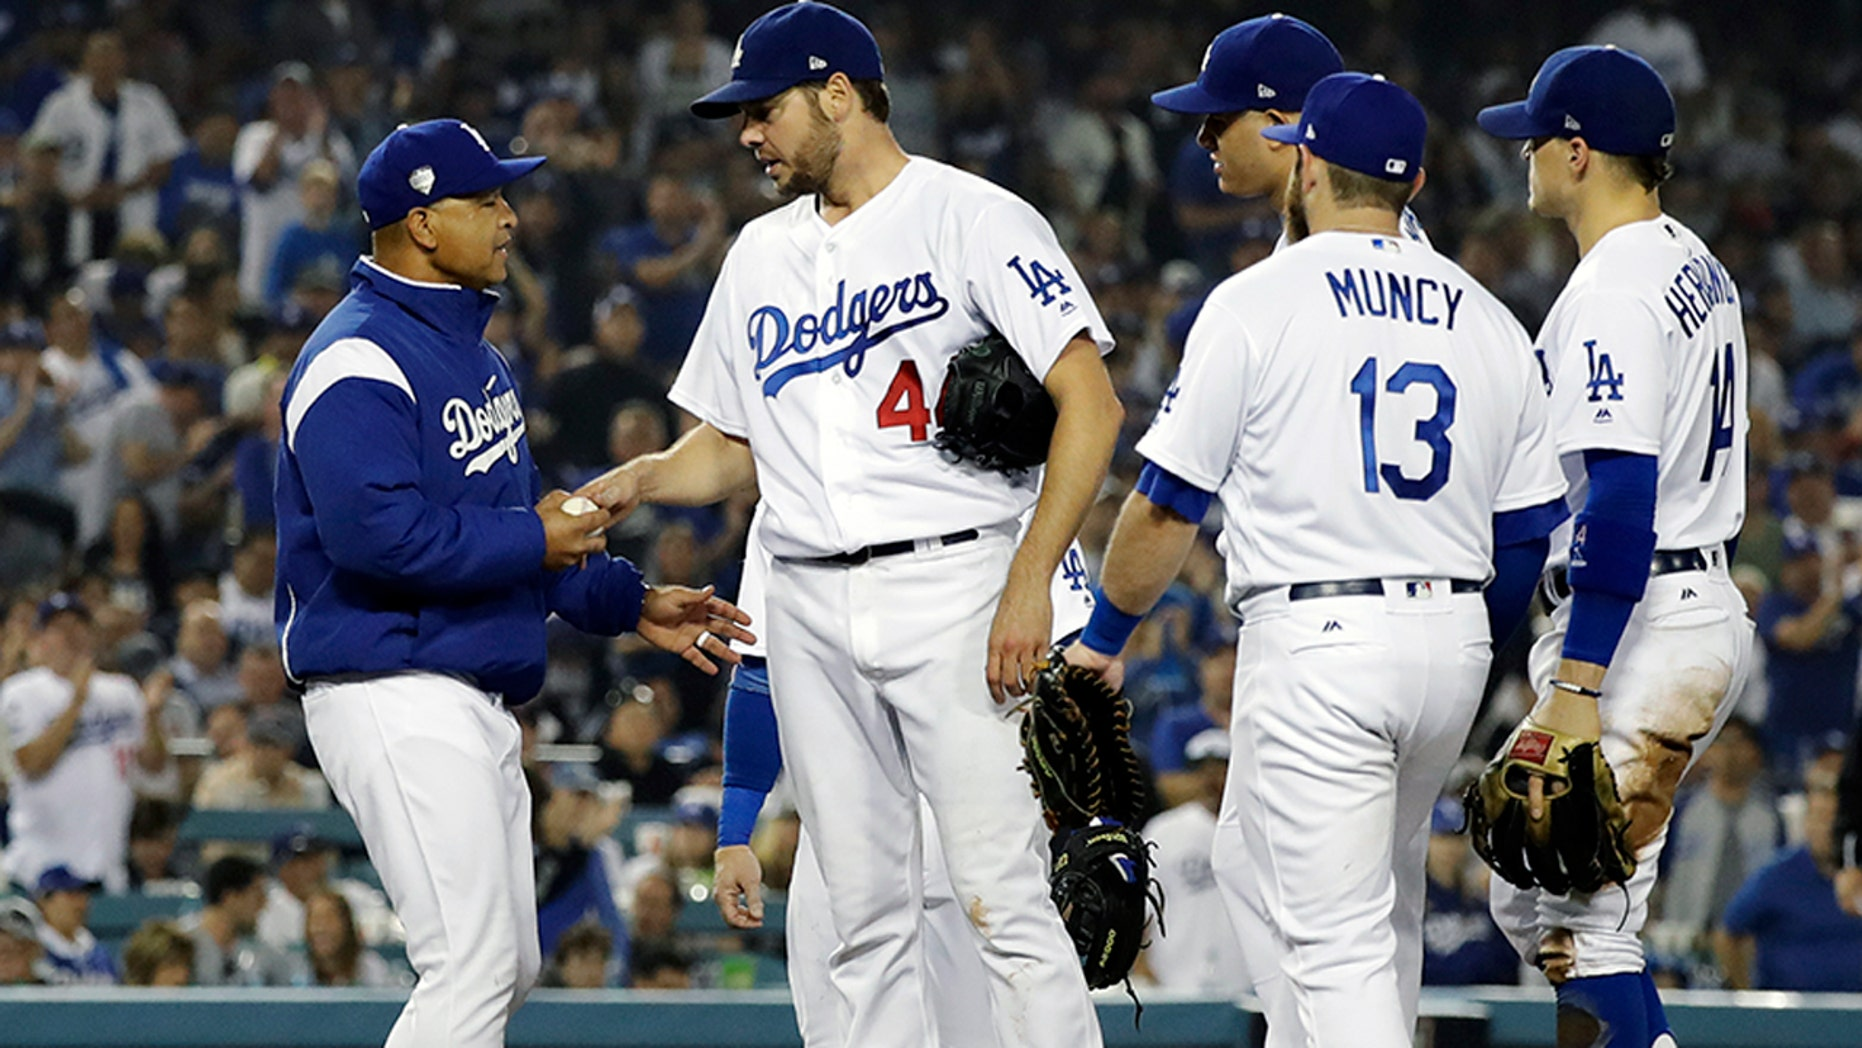 Los Angeles Dodgers pitcher Rich Hill is relieved by Los Angeles Dodgers manager Dave Roberts during the seventh inning in Game 4 of the World Series baseball game on Saturday, Oct. 27, 2018, in Los Angeles. (AP Photo/David J. Phillip)